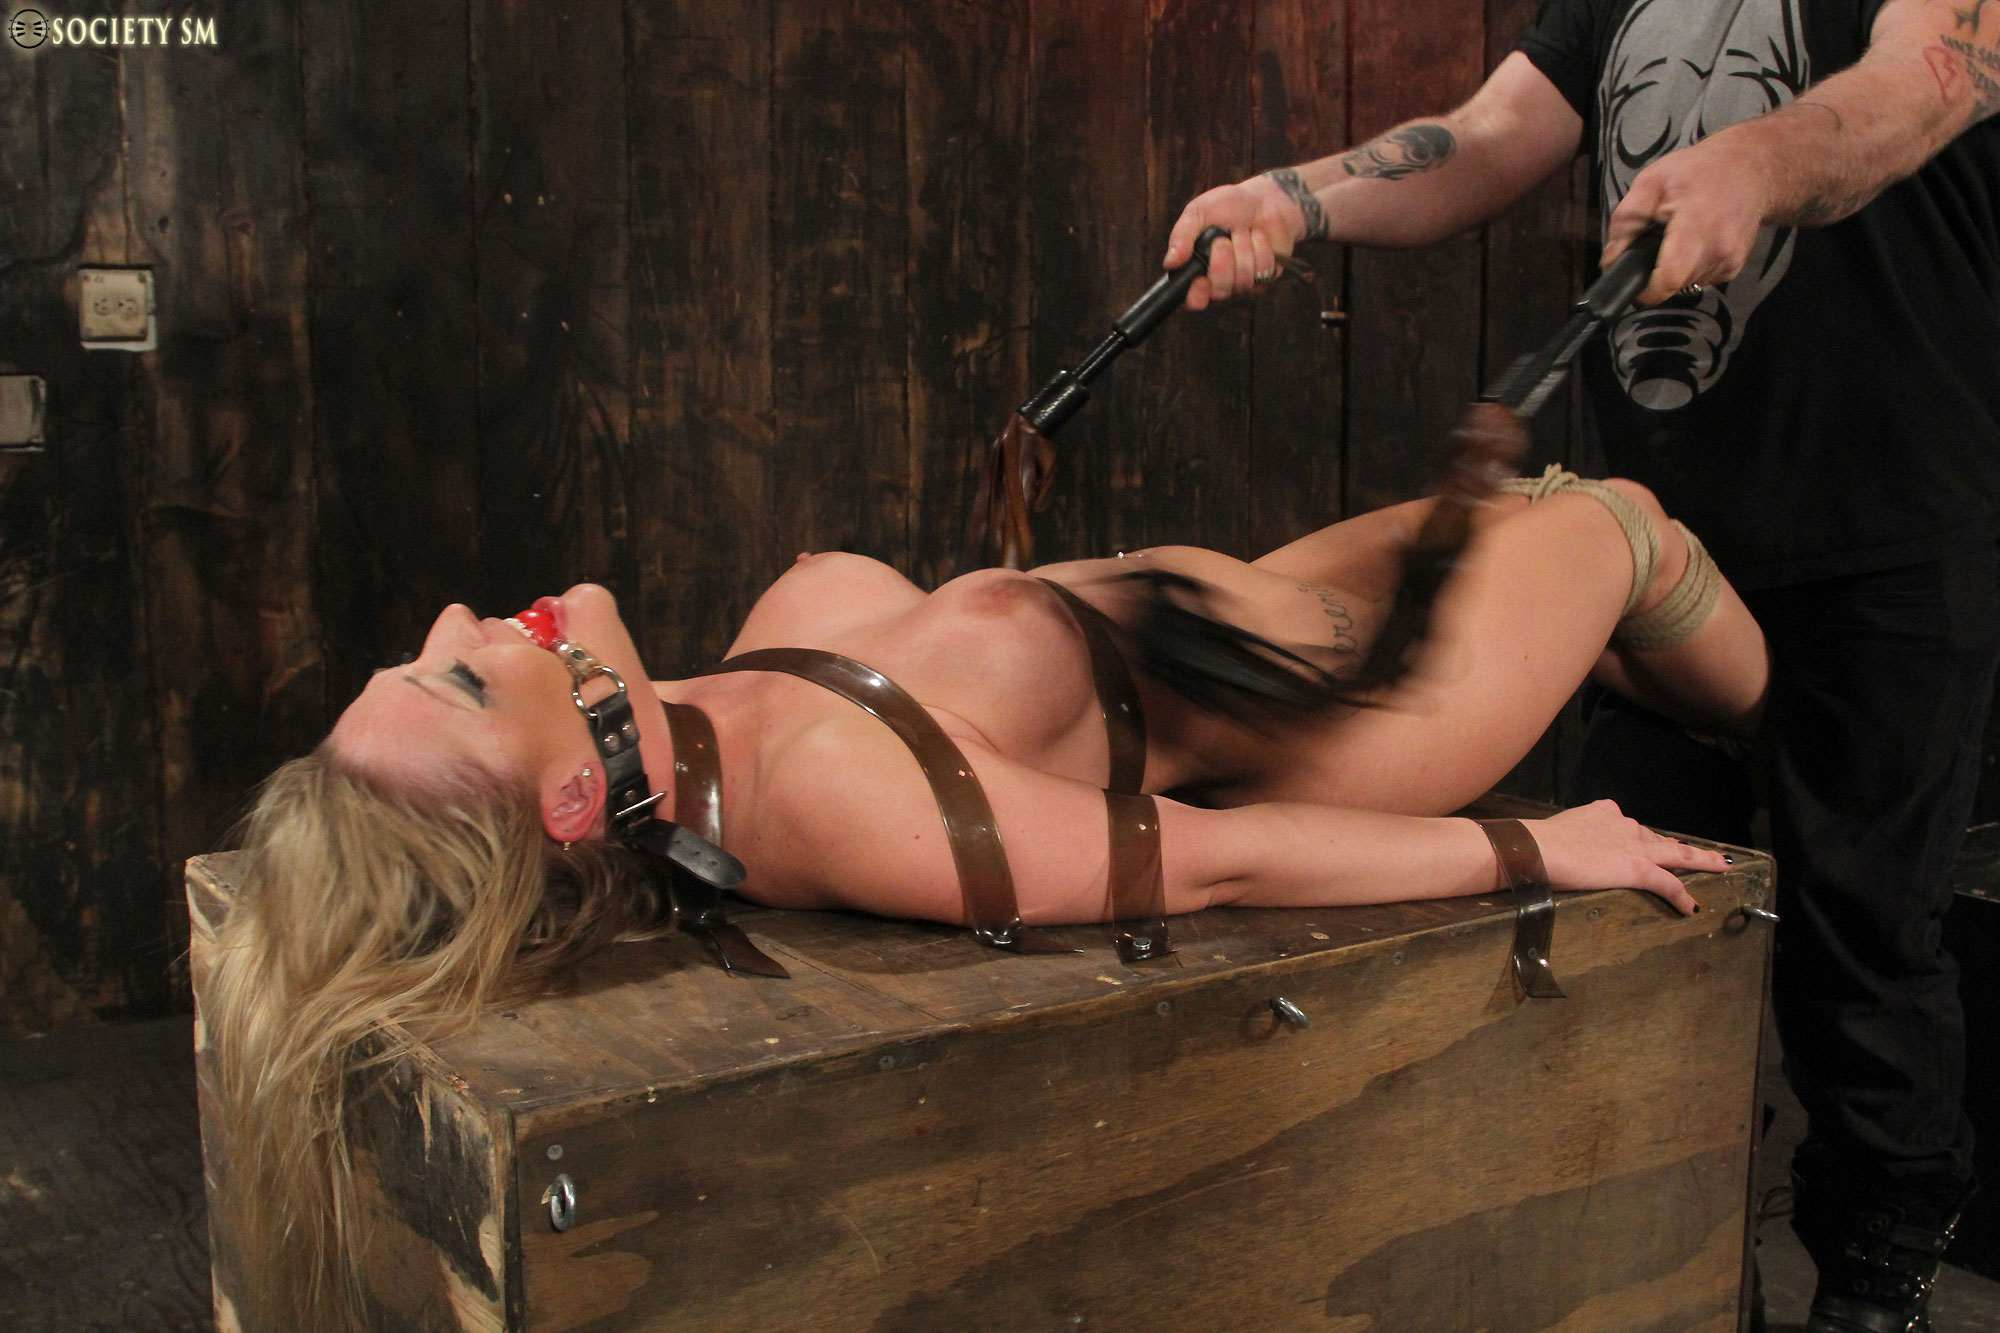 russkiy-bdsm-video-besplatno